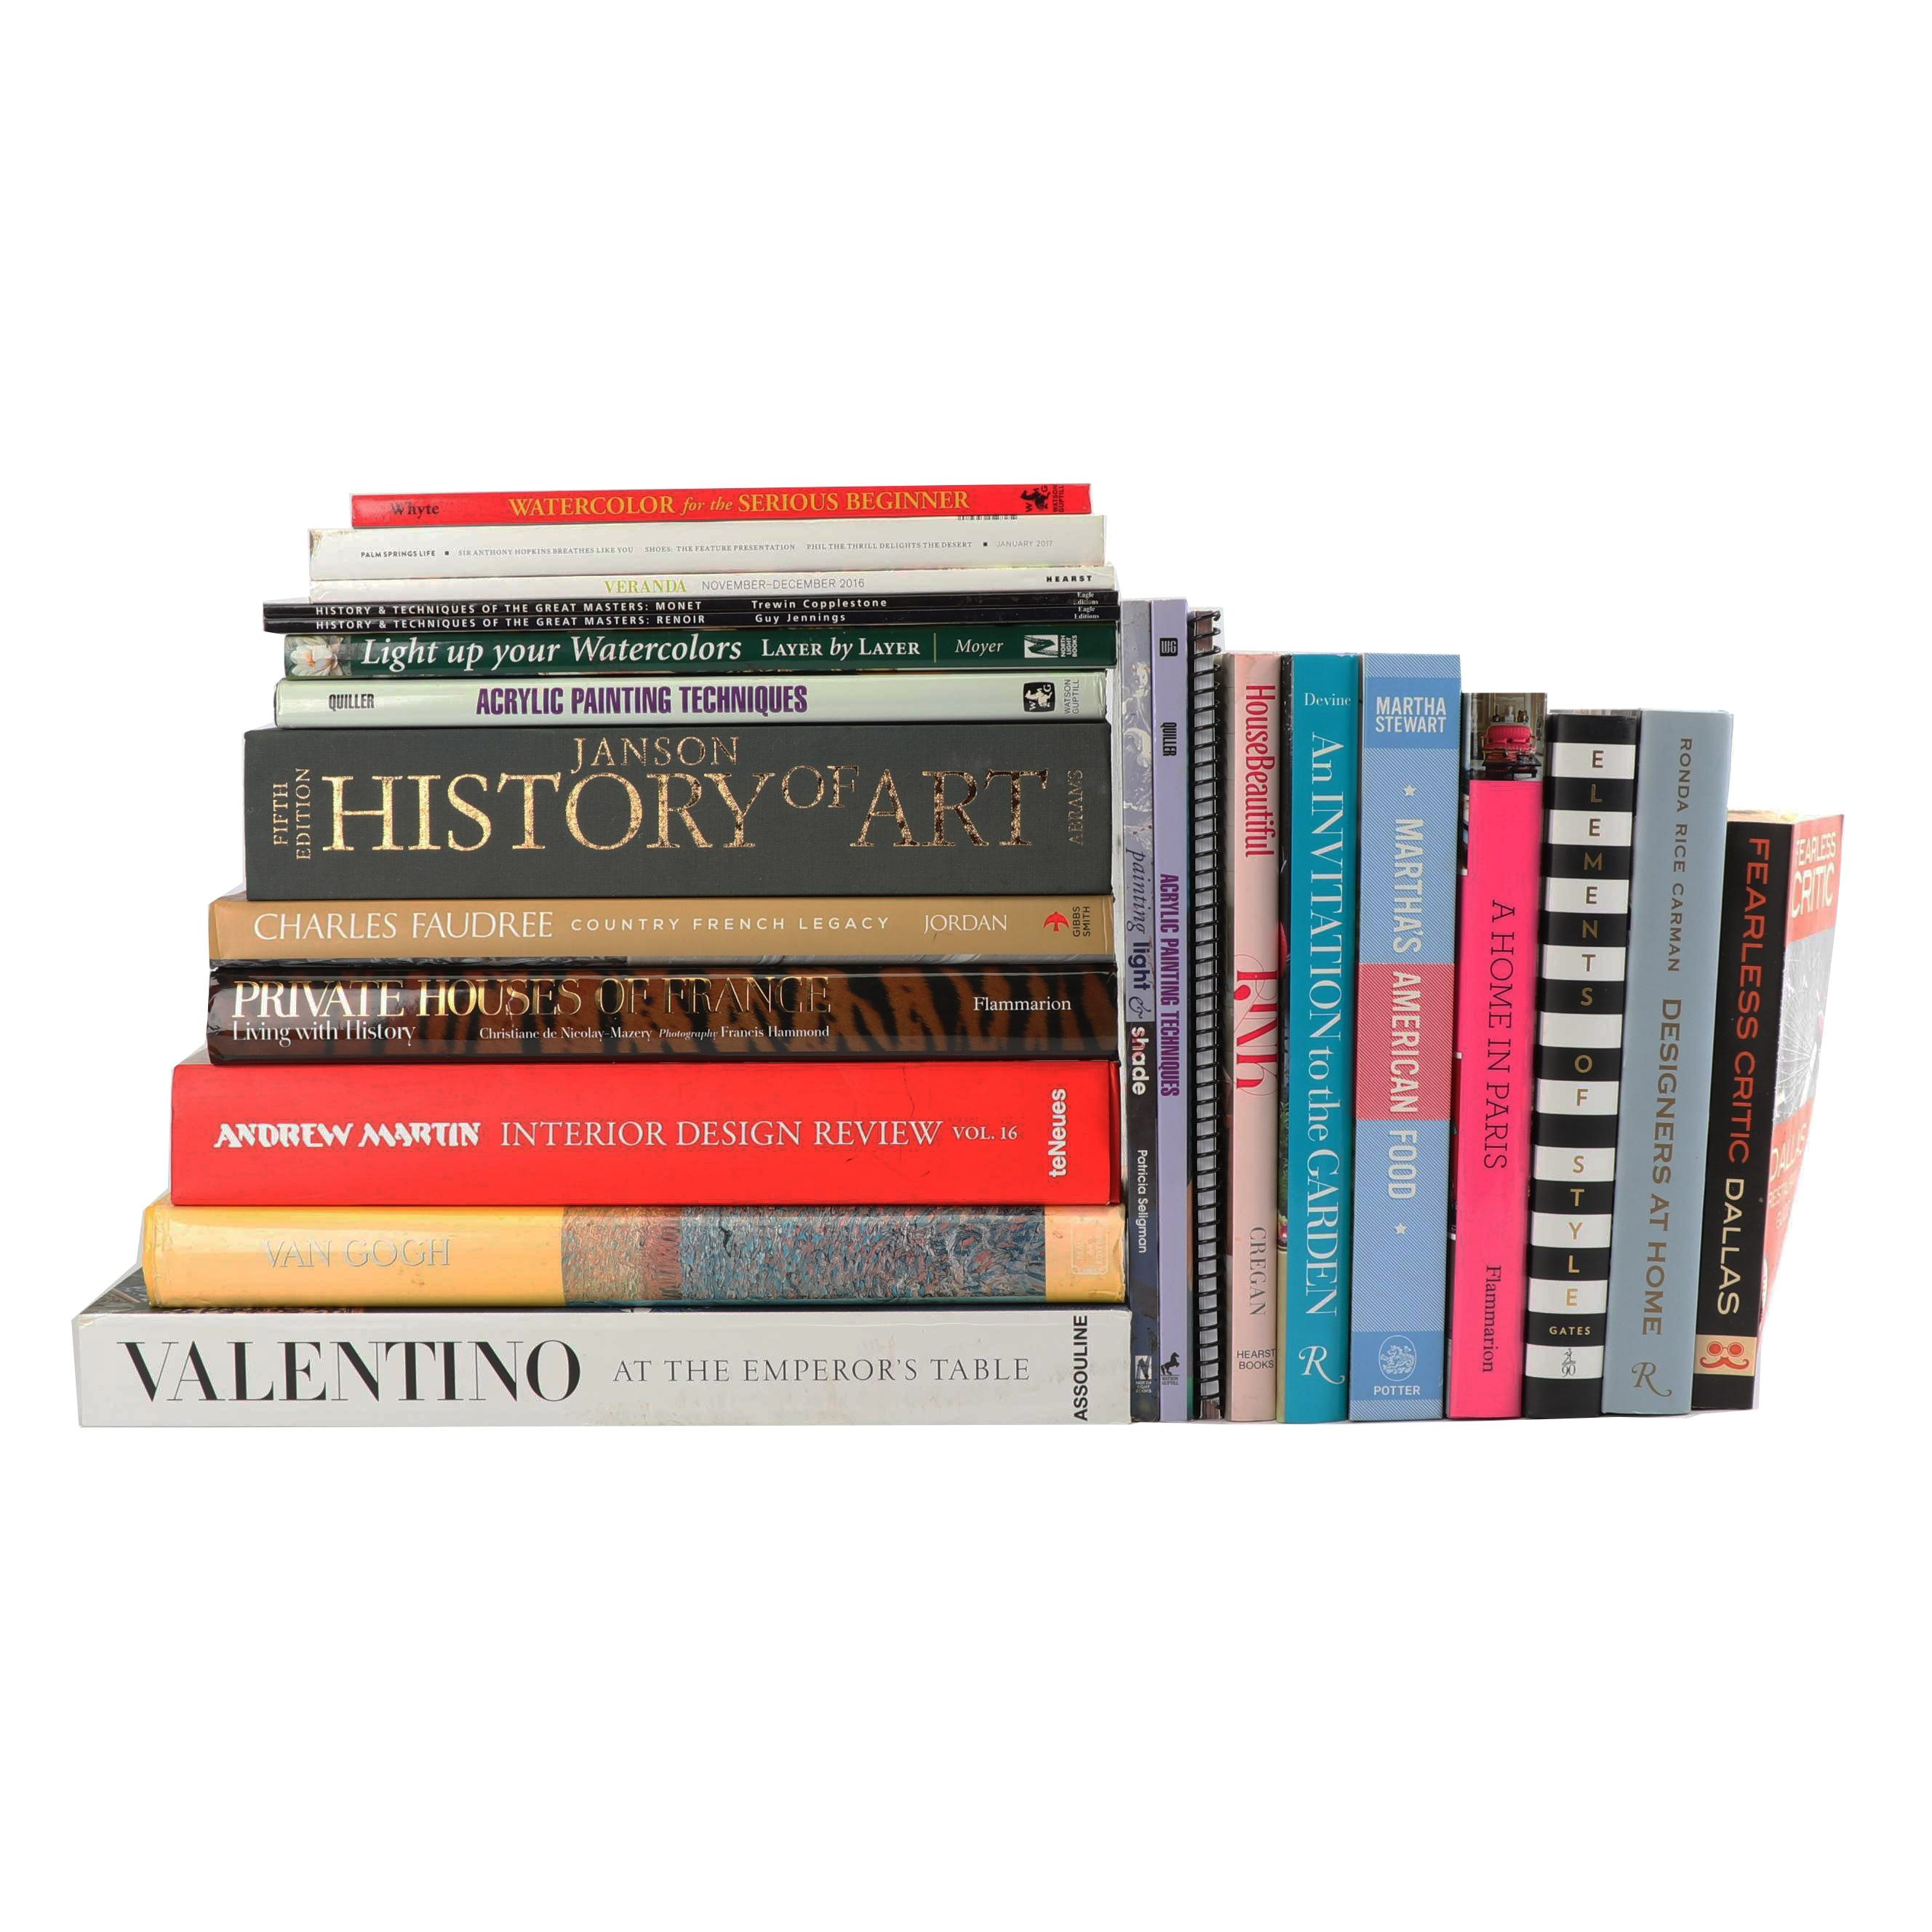 Art and Design Books and Magazines